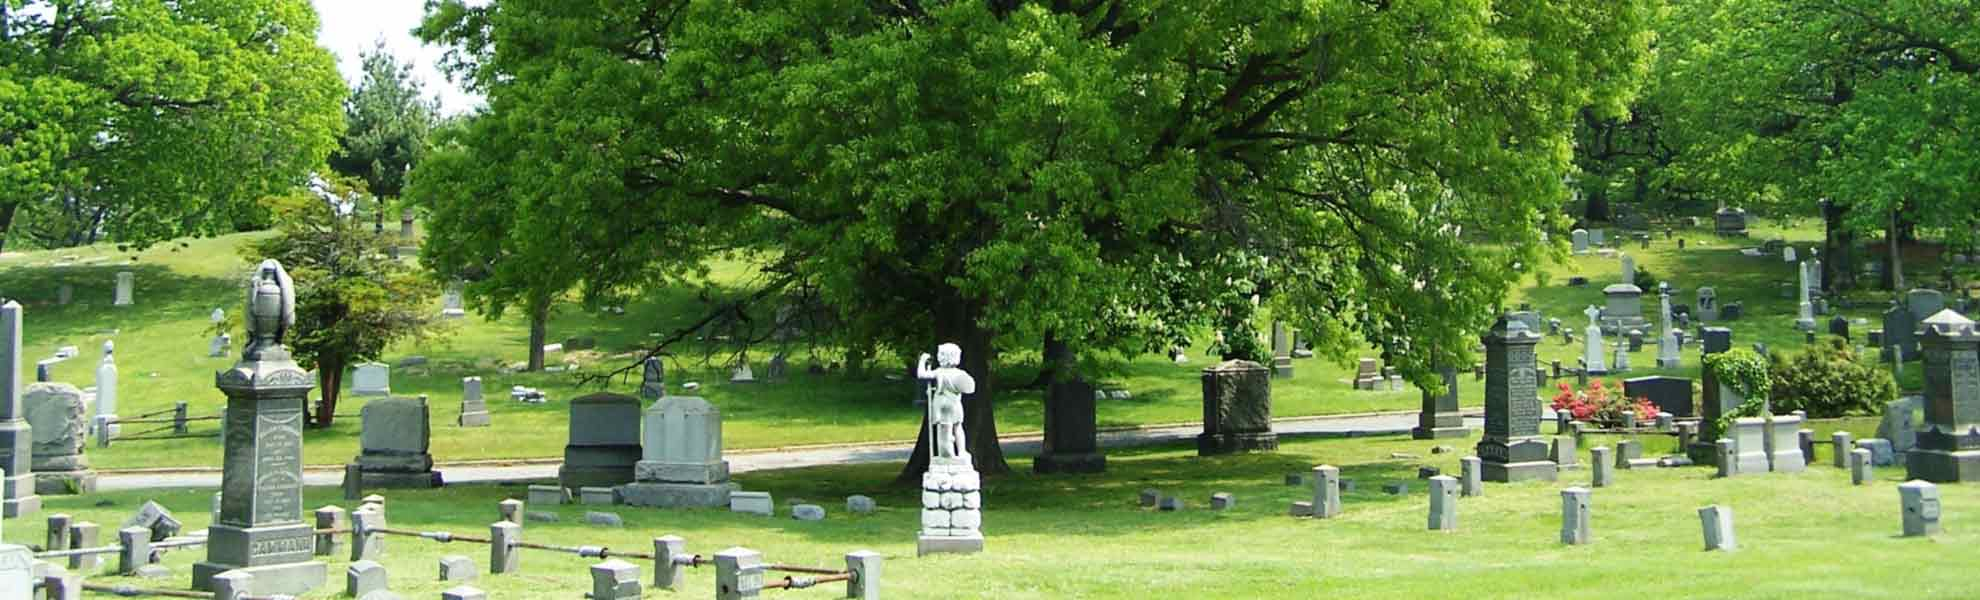 Image of cypress hills cemetery grounds